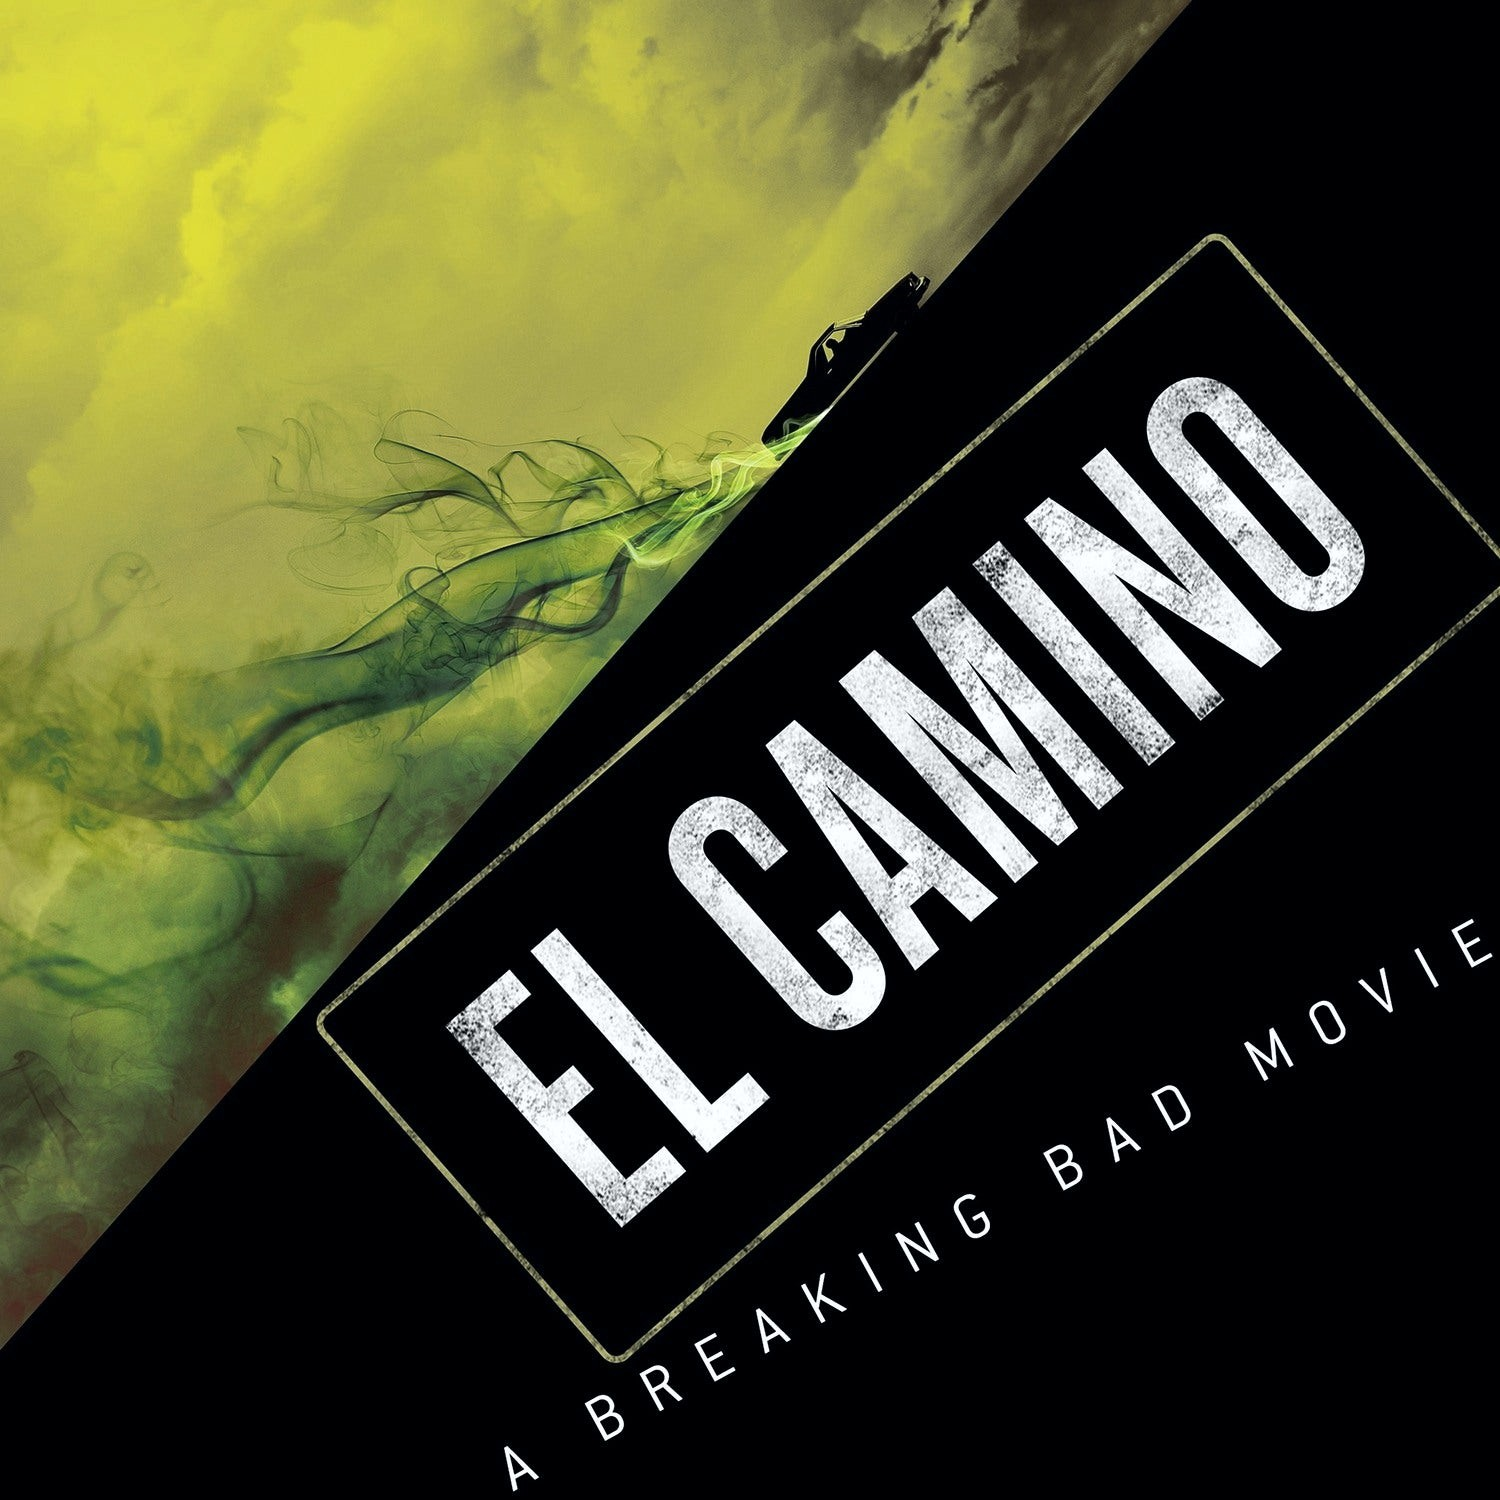 El Camino: A Breaking Bad Movie'den Fragman Yayınlandı